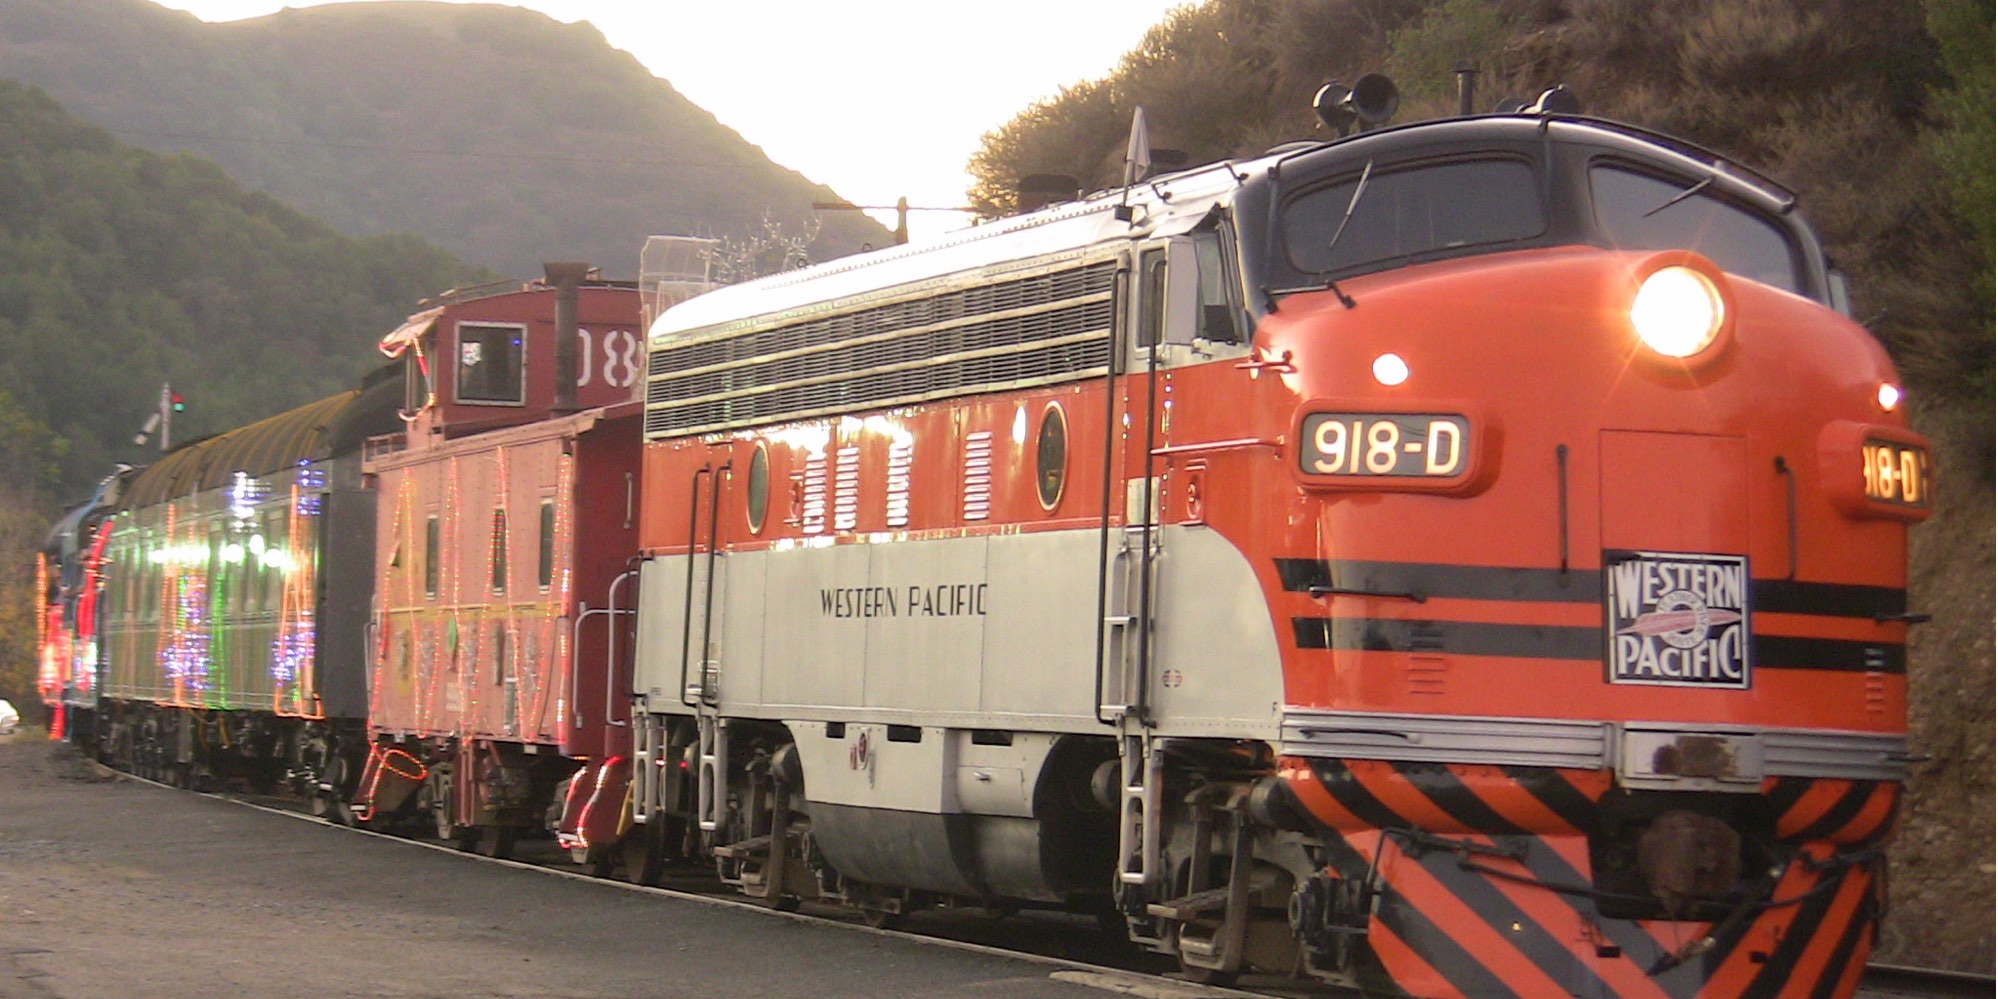 Niles Canyon Railway x-WP 918D pull the Train of Lights into Sunol